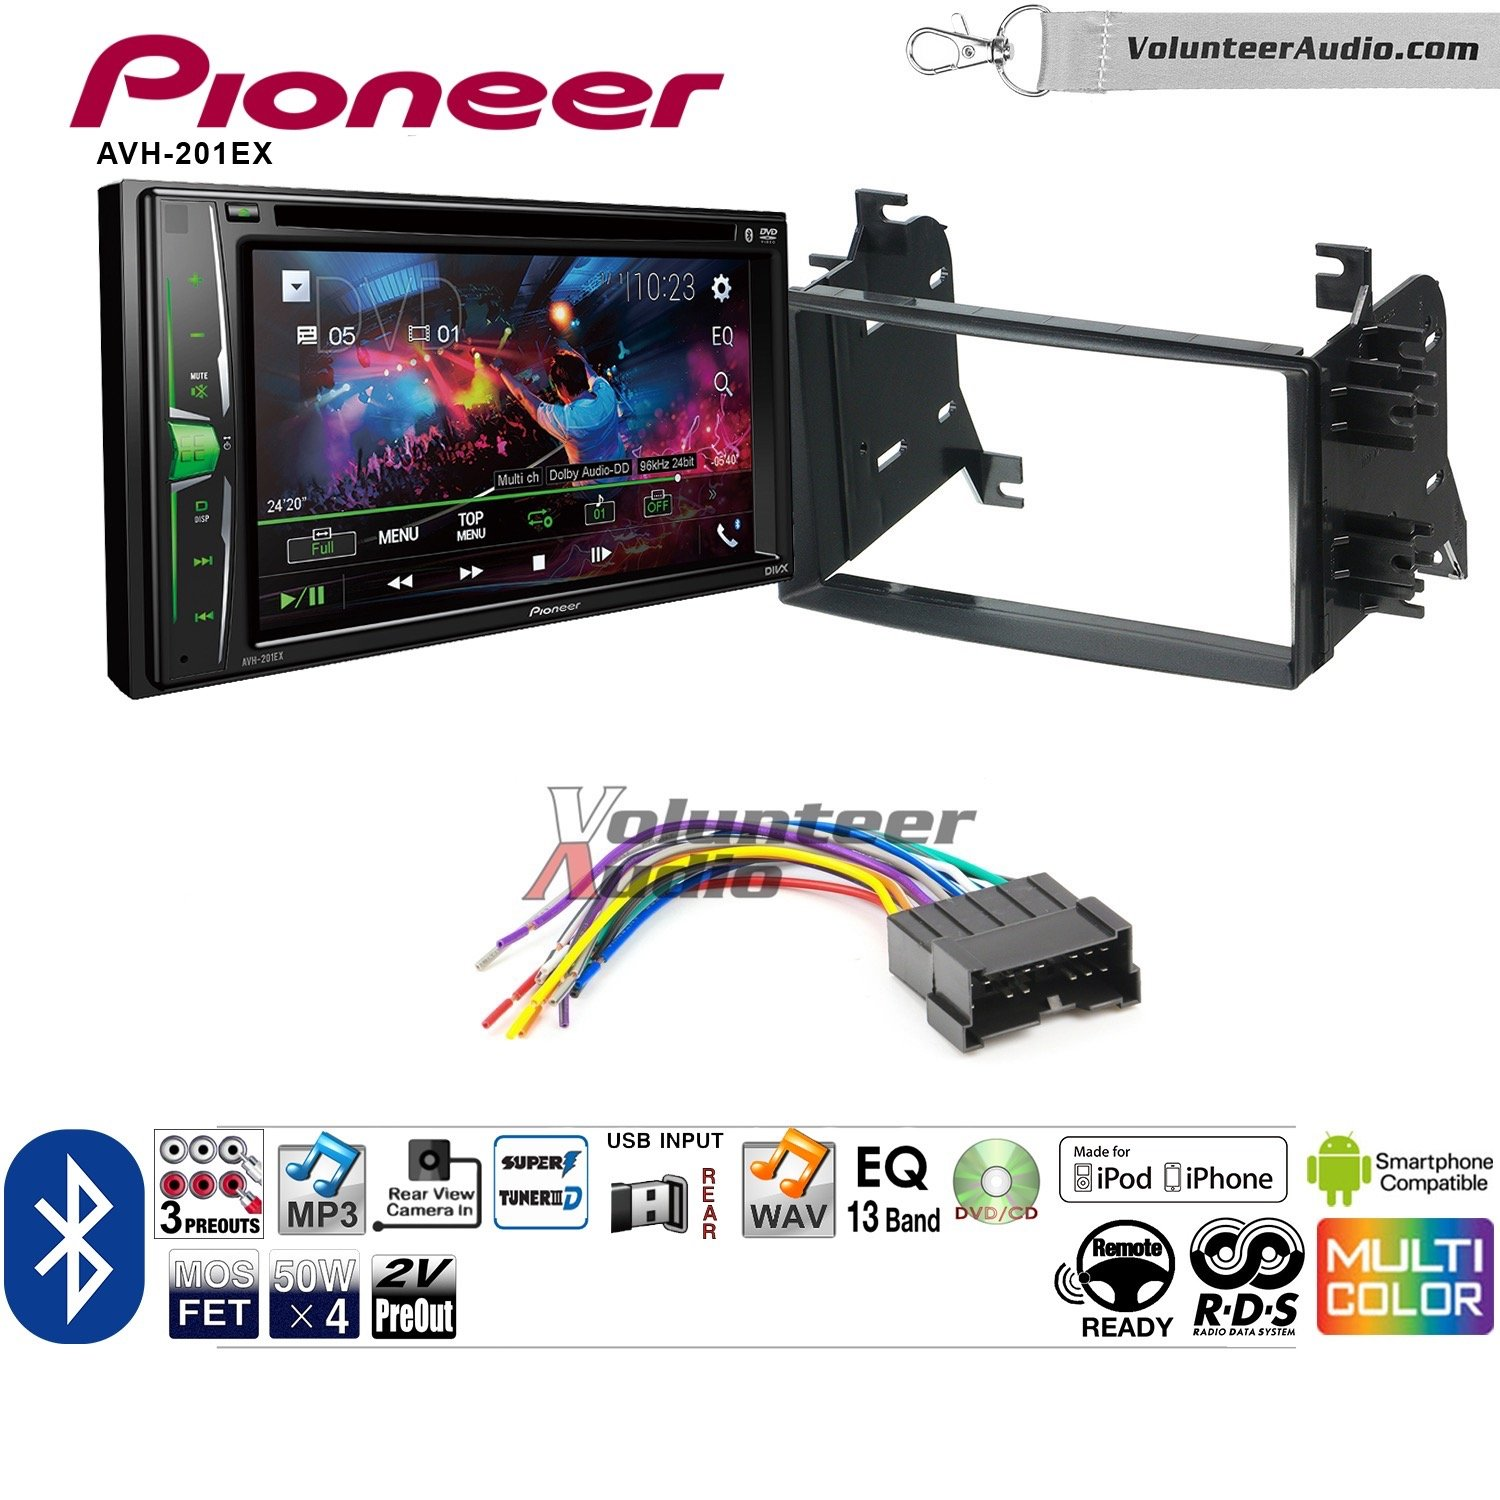 Volunteer Audio Pioneer AVH-201EX Double Din Radio Install Kit with CD Player Bluetooth USB/AUX Fits 2004-2006 Kia Spectra. 2005-2008 Kia Spectra5